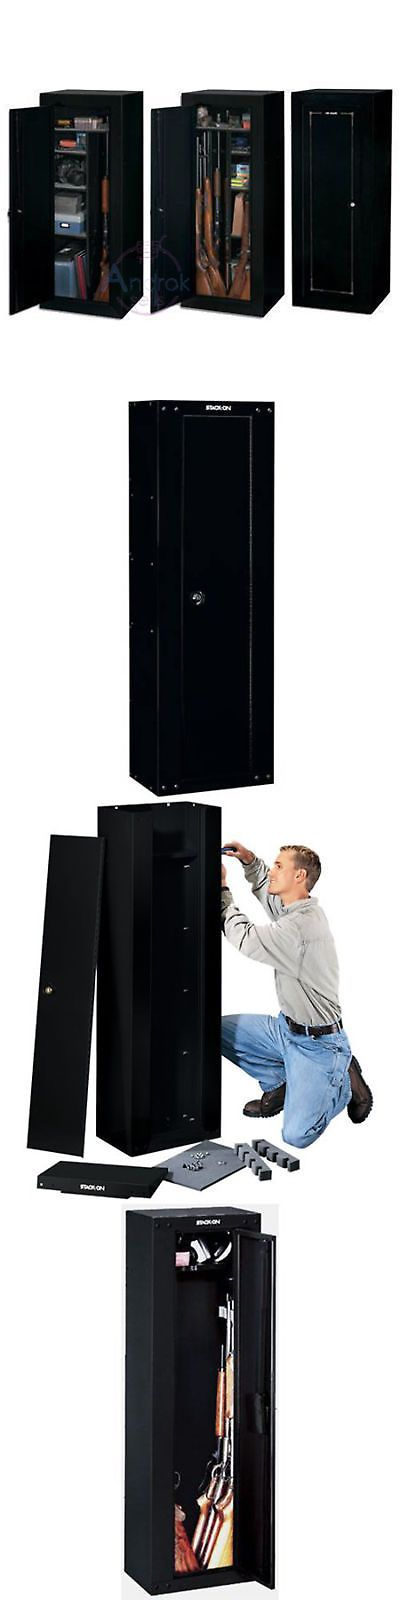 Cabinets and Safes 177877: 8 Gun Cabinet Storage Safe Rack Rifle Ammo Security Locker Safety Hunting Code -> BUY IT NOW ONLY: $109.99 on eBay!